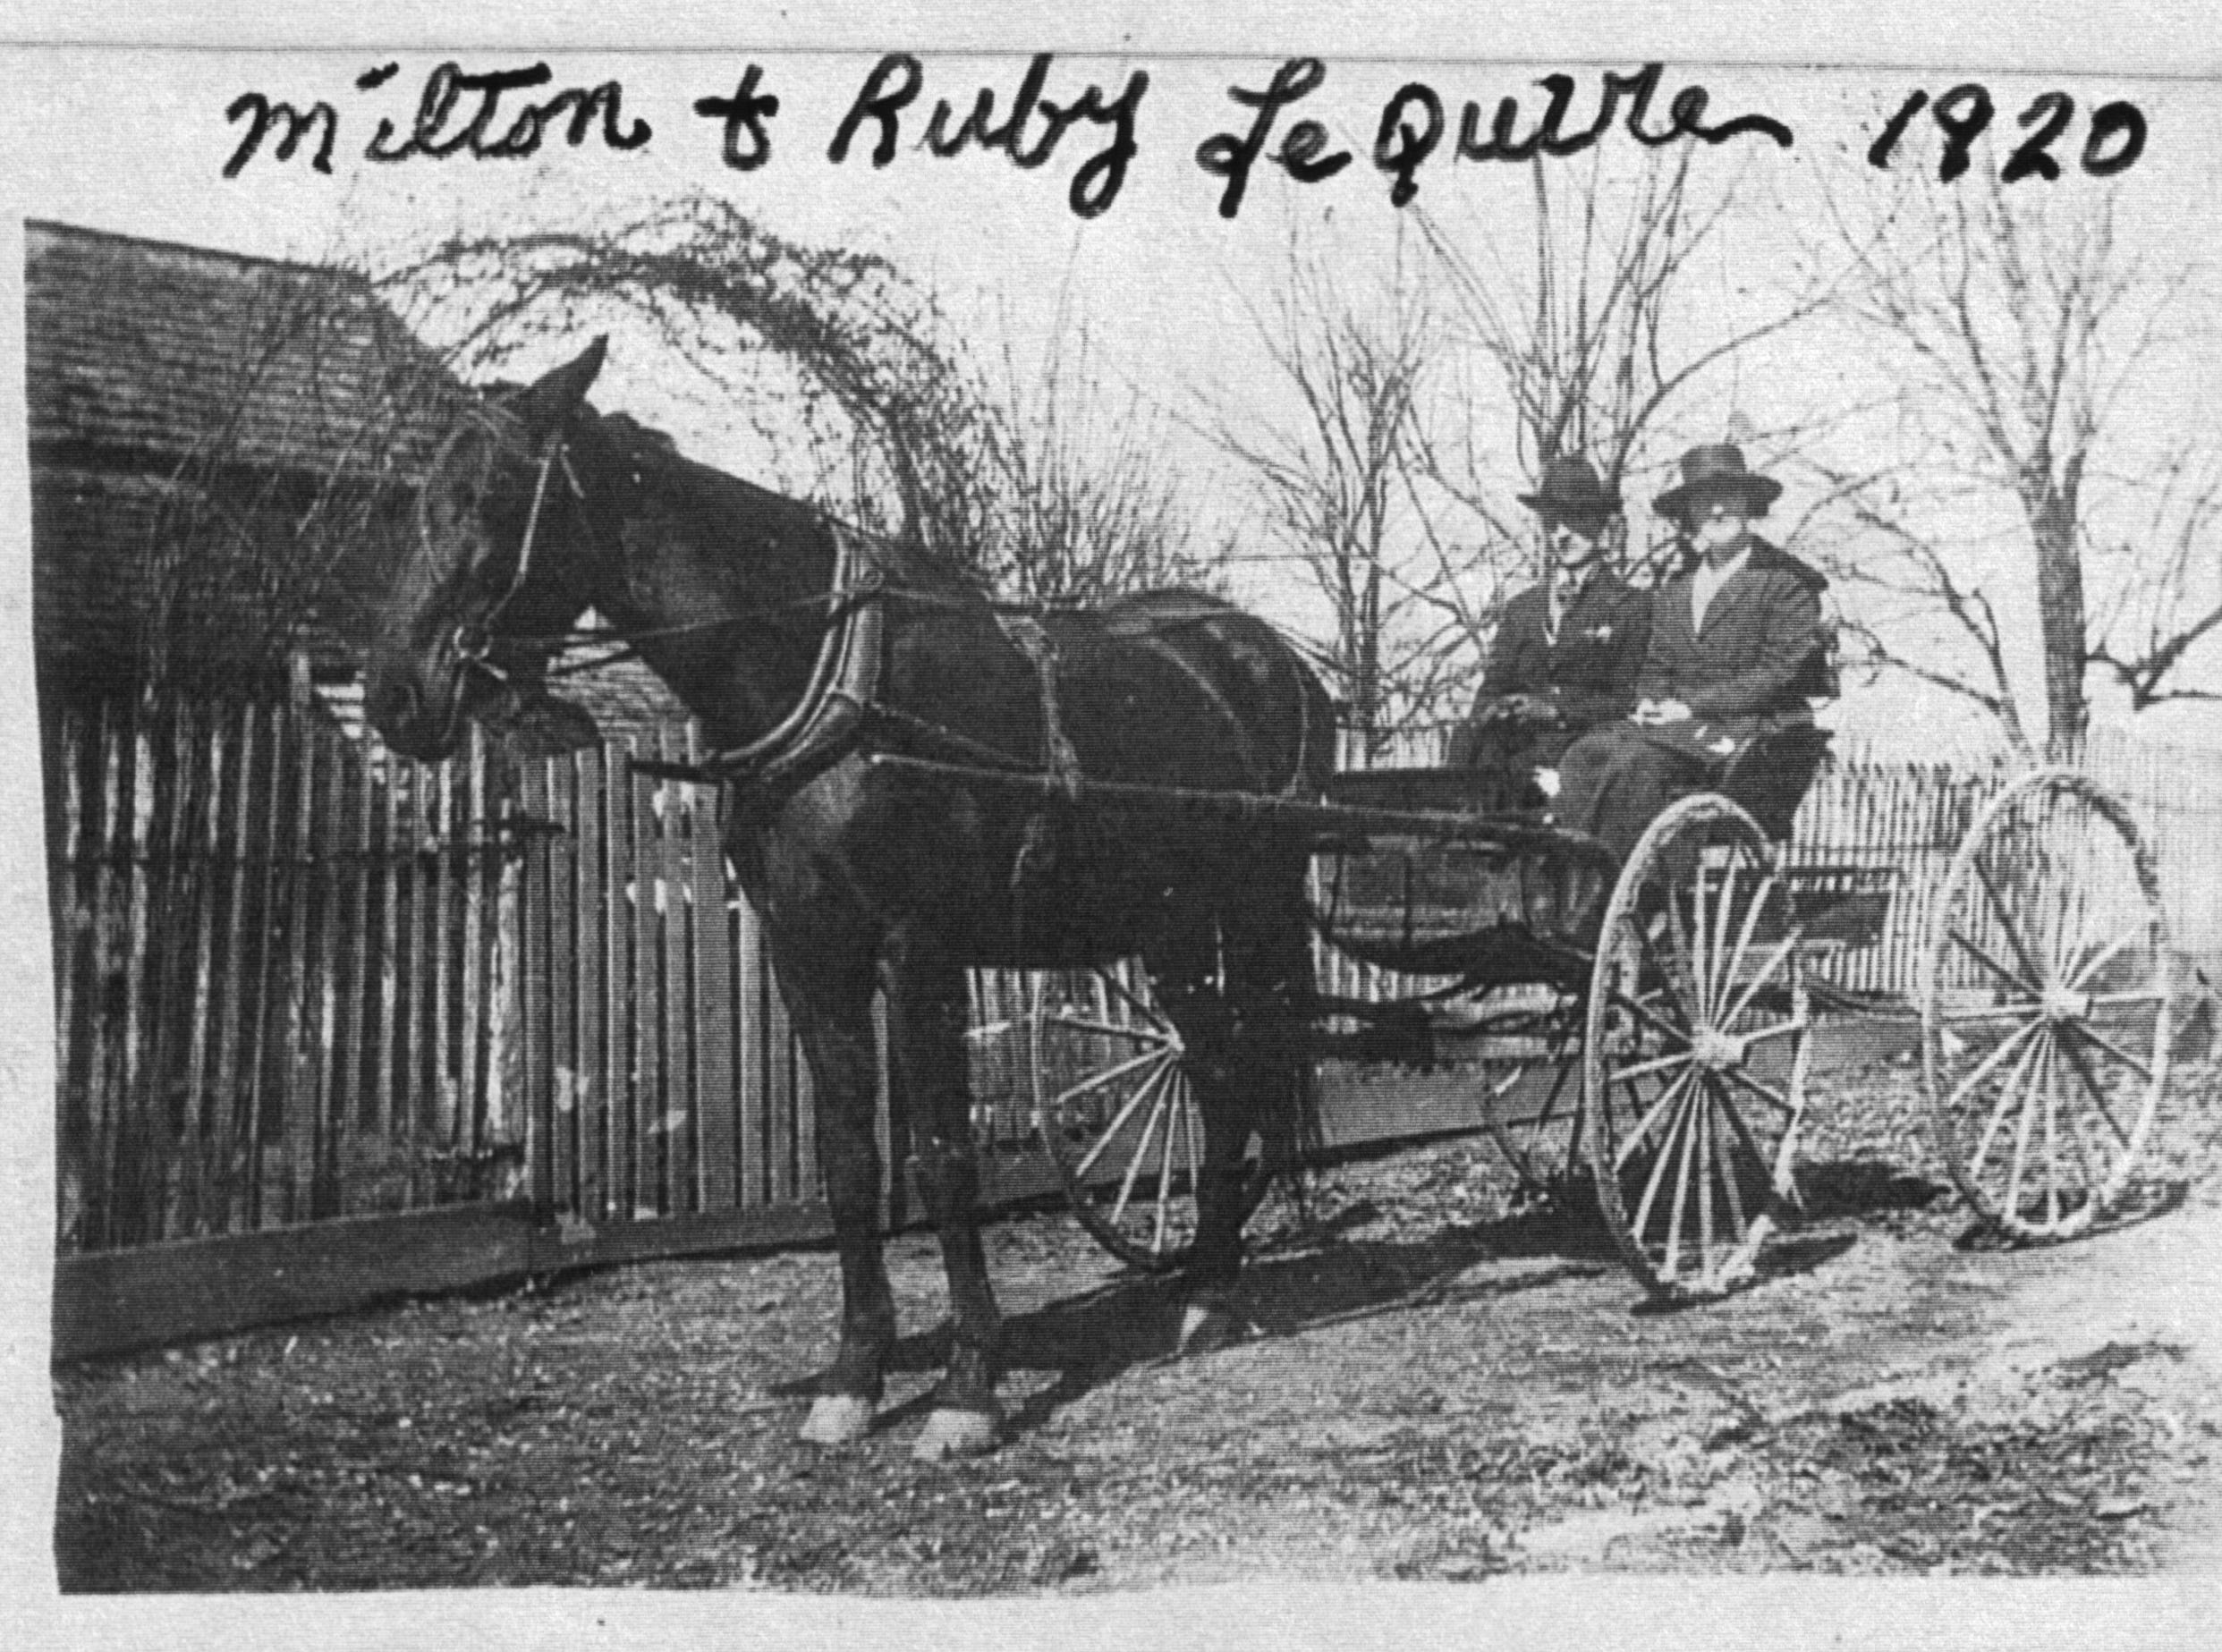 Cades Cove residents Milton and Ruby LeQuire in 1920.